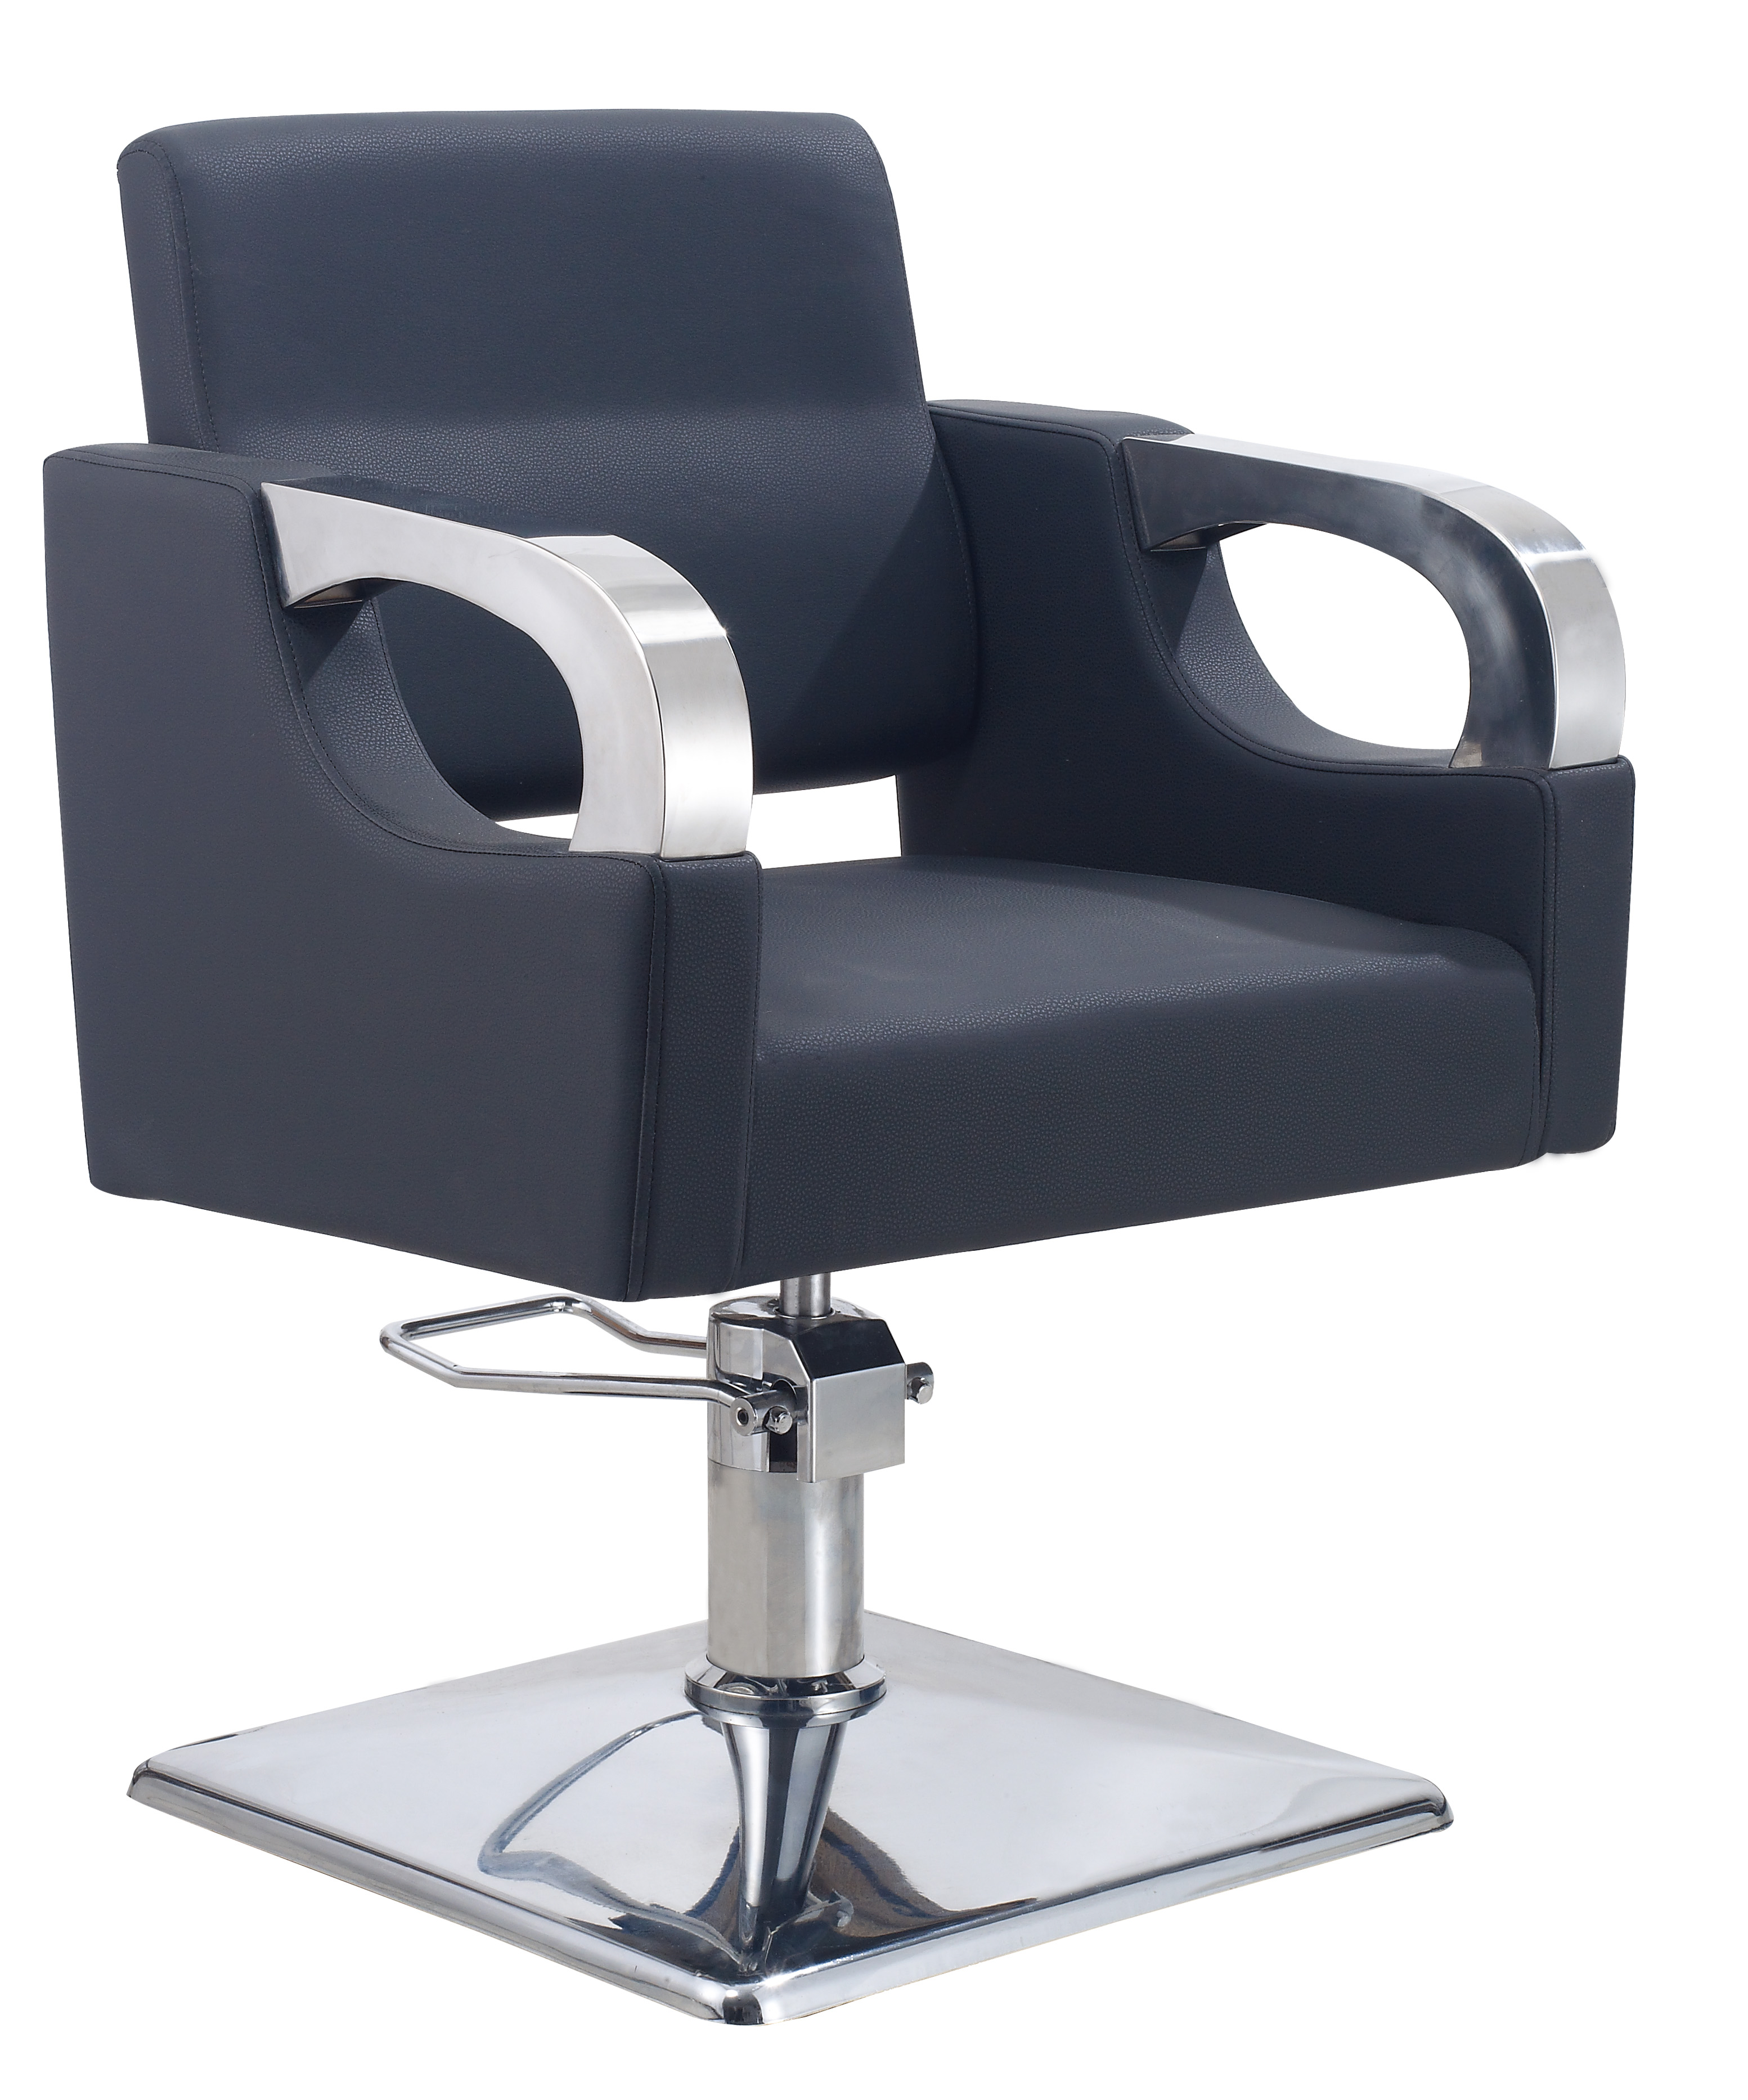 Friends Furniture Mississauga Salon Equipment Toronto Products Salon Furniture Depot